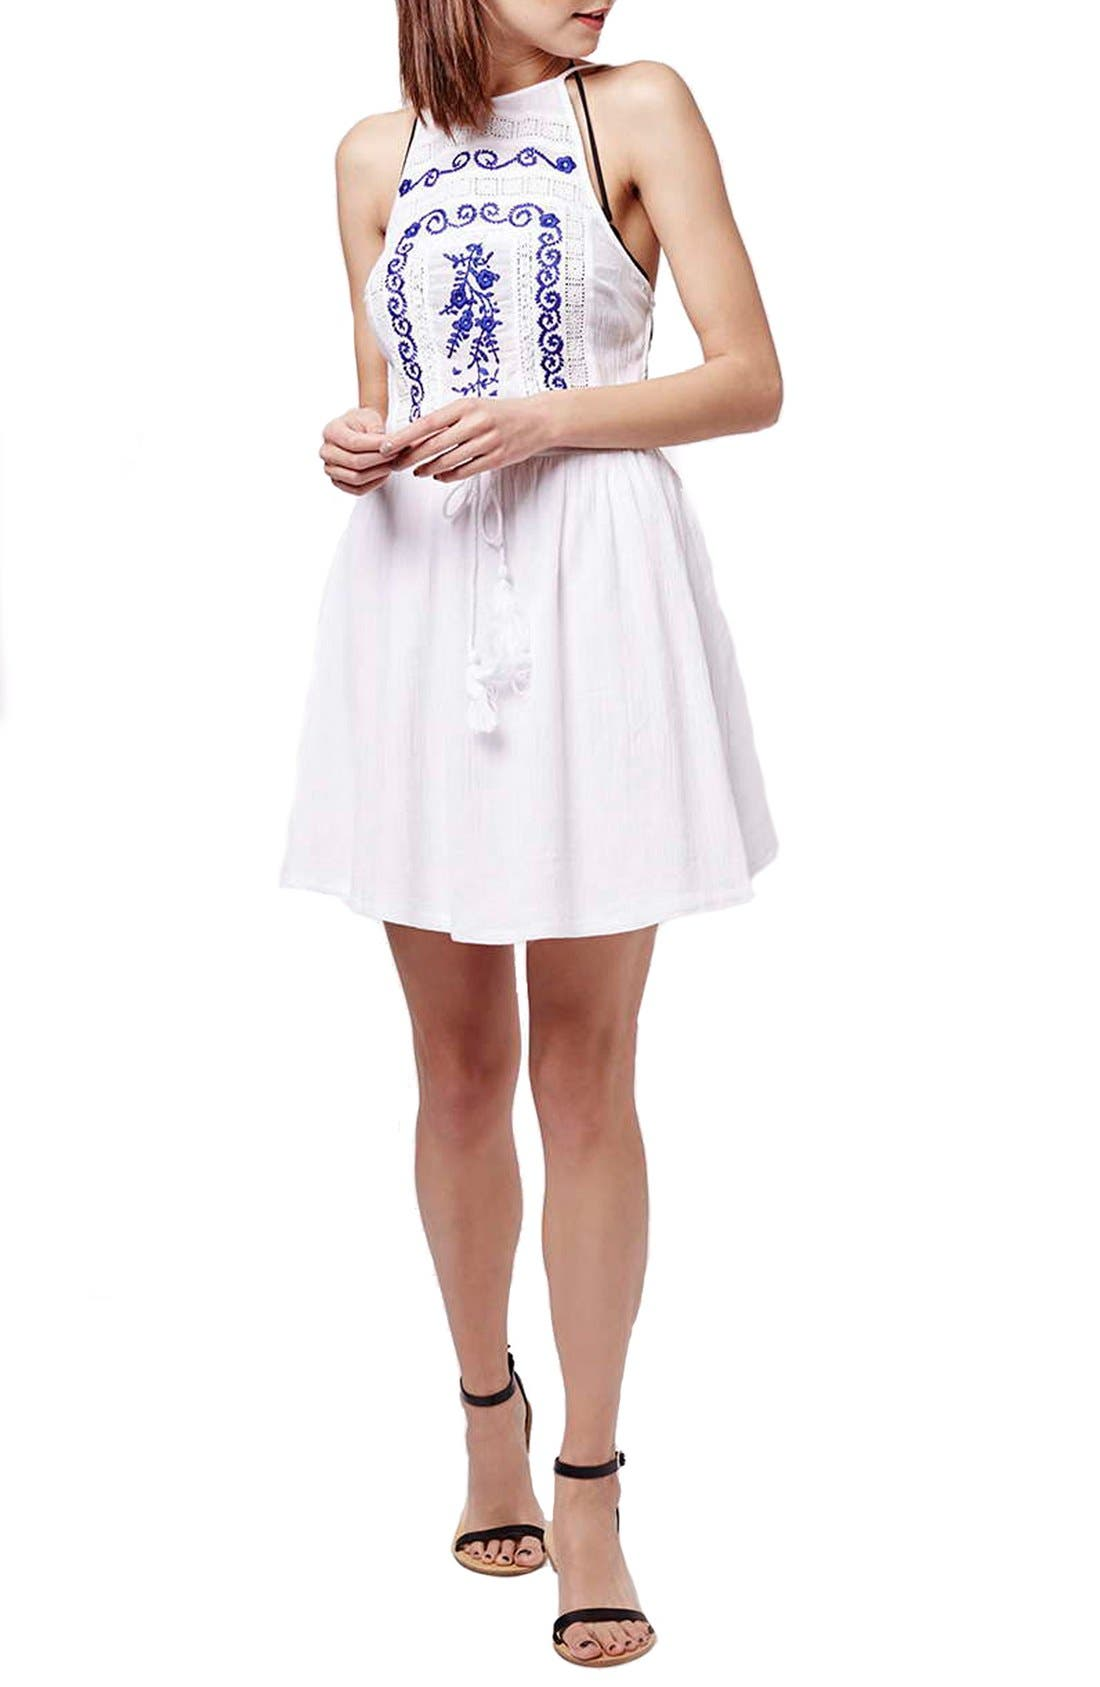 Main Image - Topshop 'Claud' Embroidered Sleeveless Sundress Cover-Up